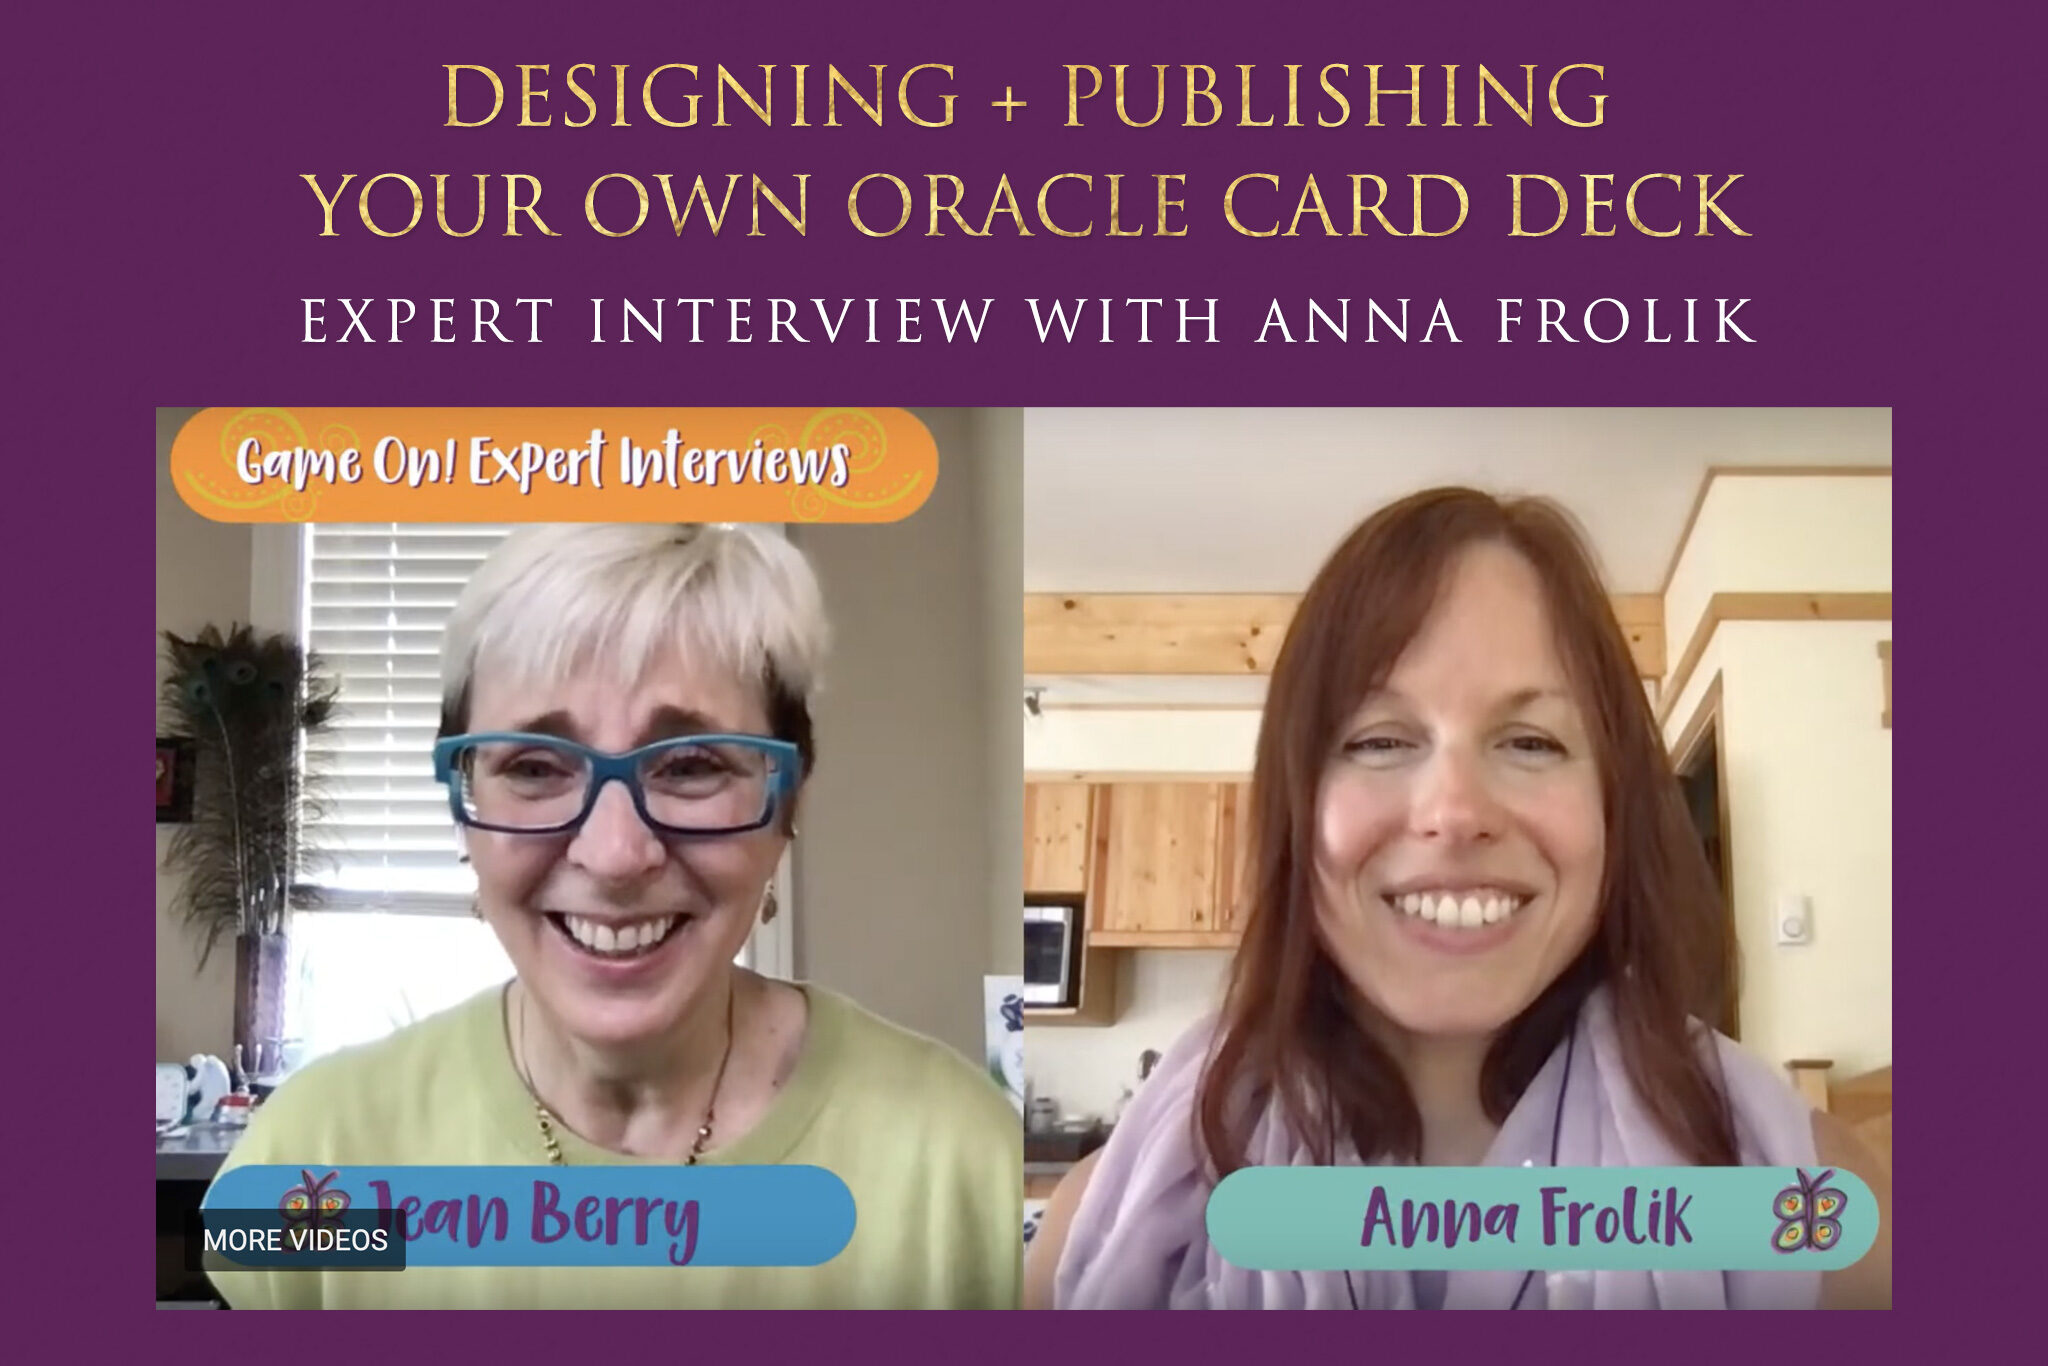 Designing + Publishing Your Own Oracle Card Deck (Expert Interview with Anna Frolik + Jean Berry)